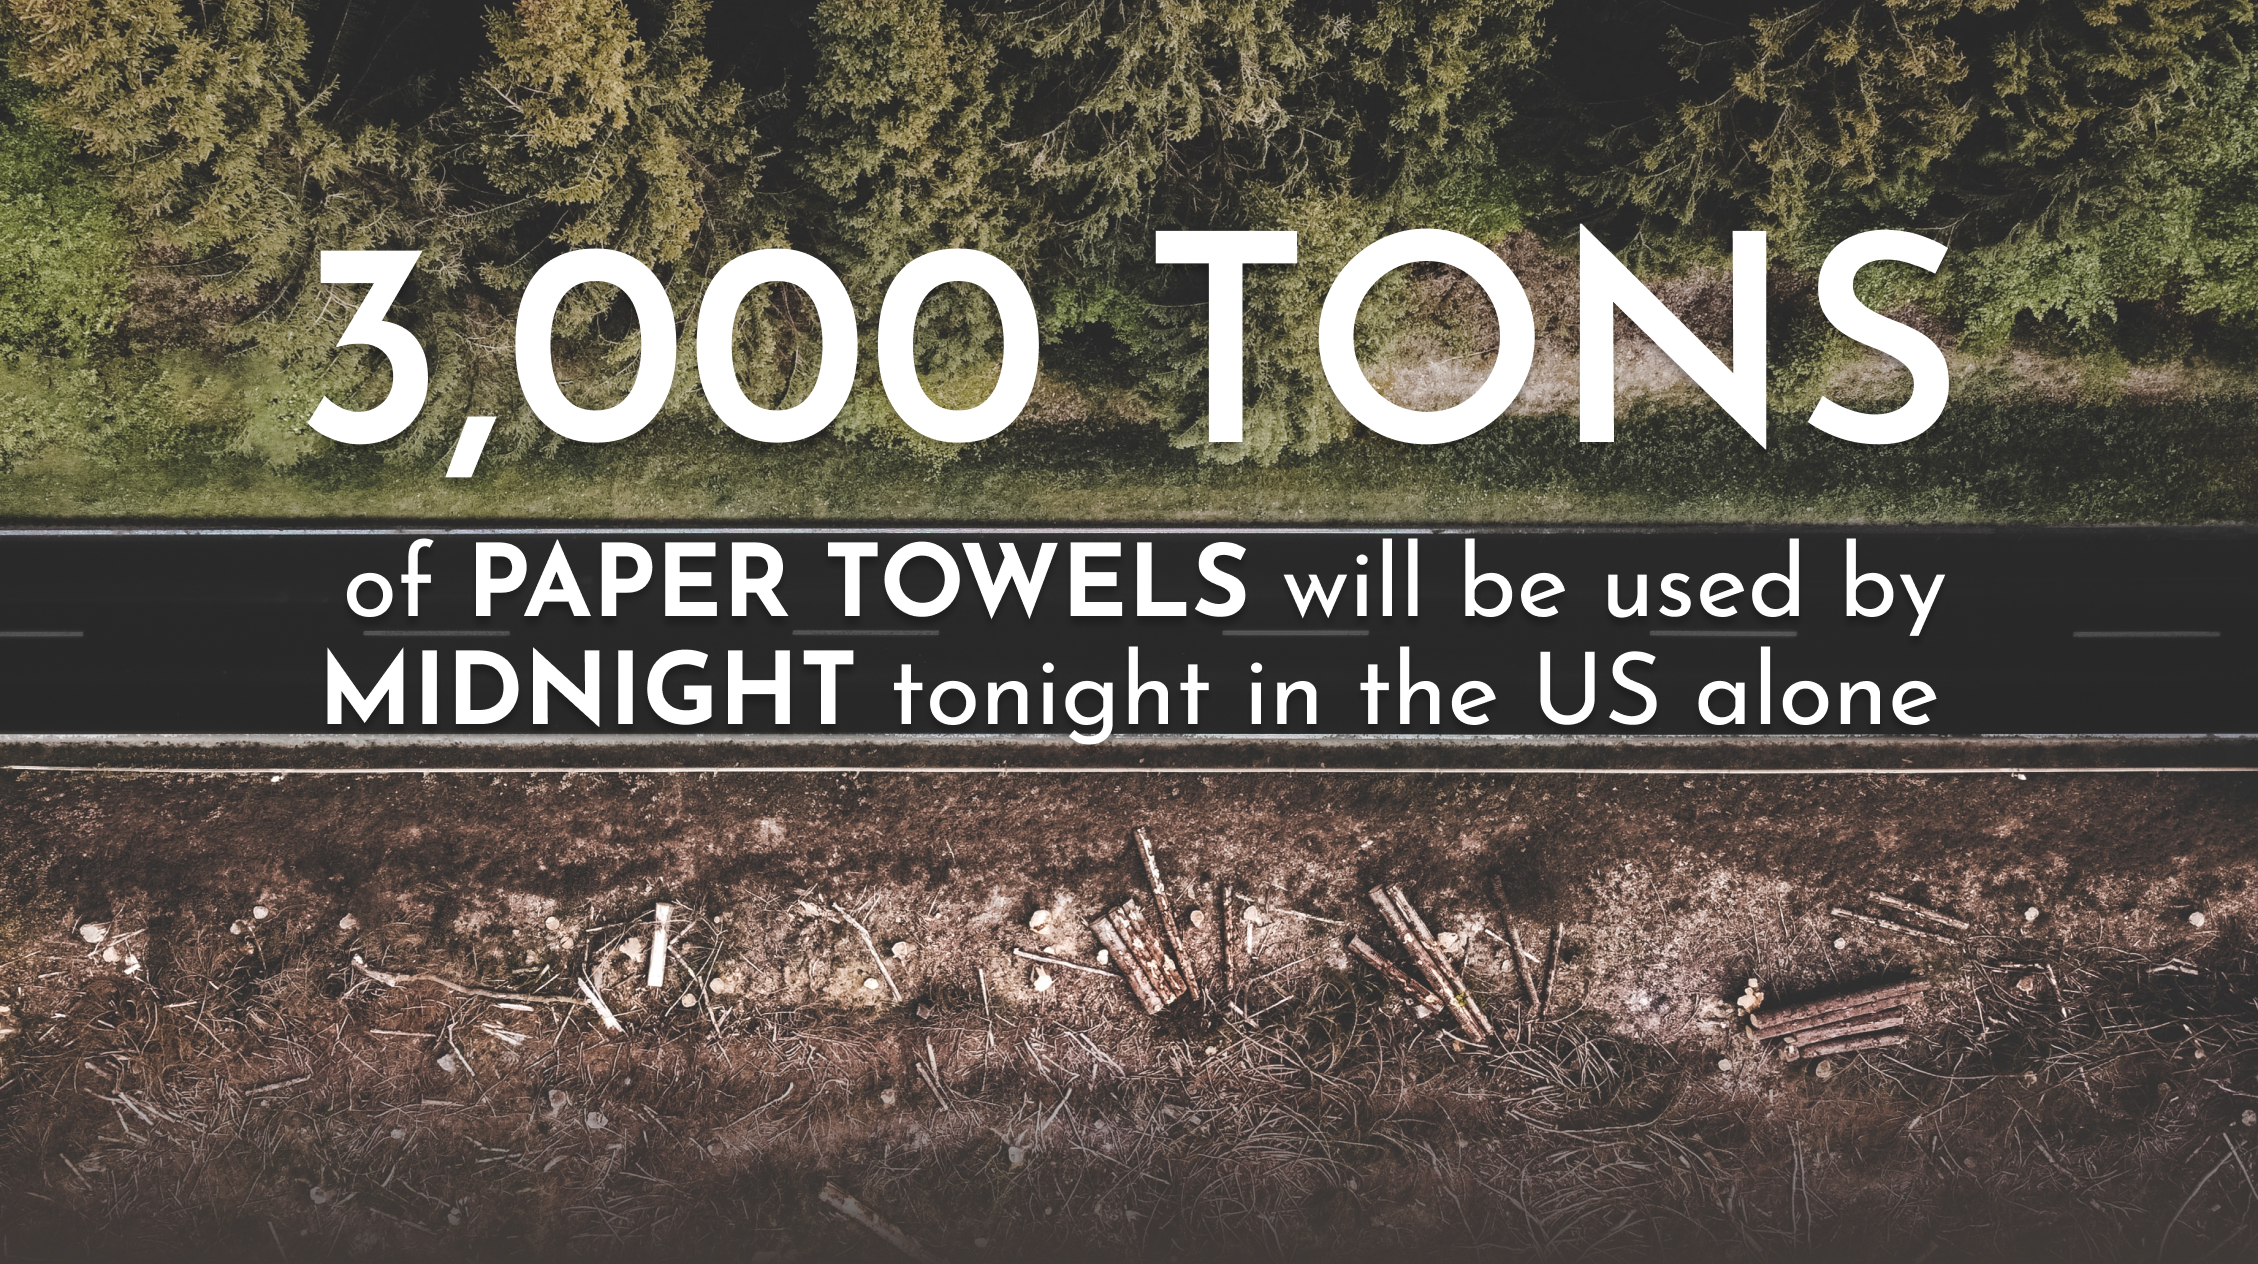 3,000 Tons of paper towels will be used by midnight tonight in the U.S. alone.